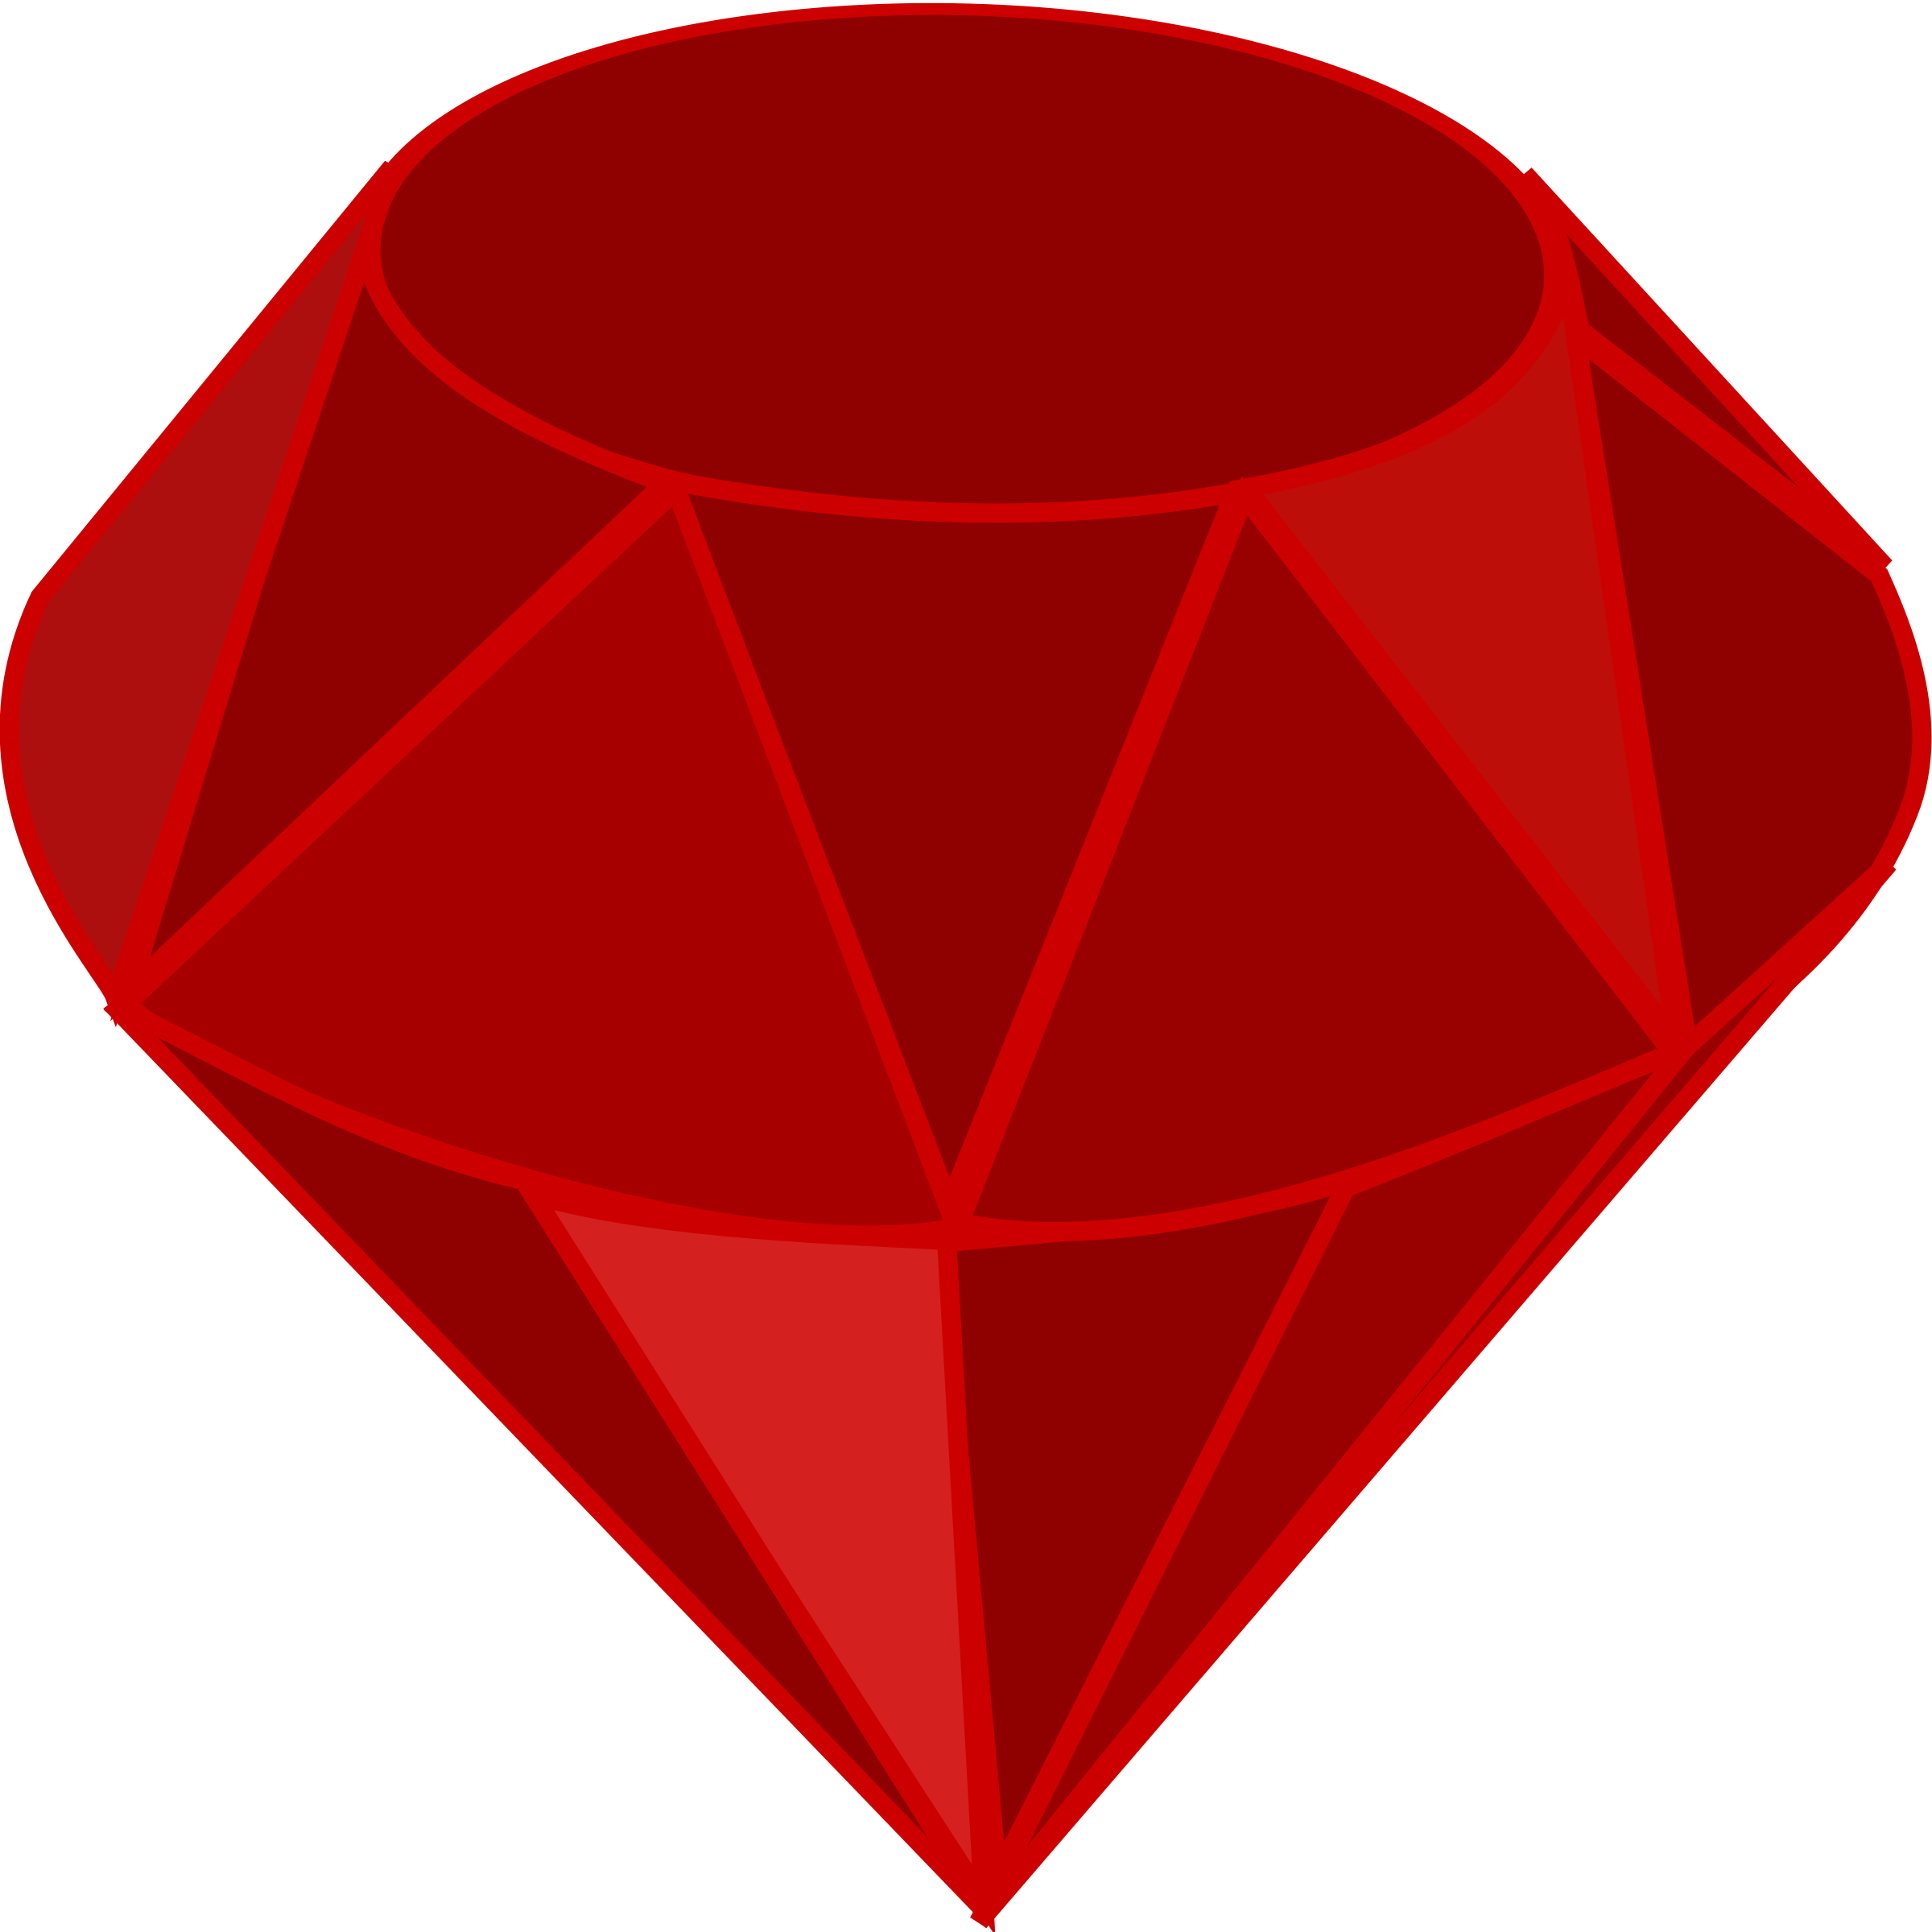 Emerald vector ruby stone. Clipart red no transparency